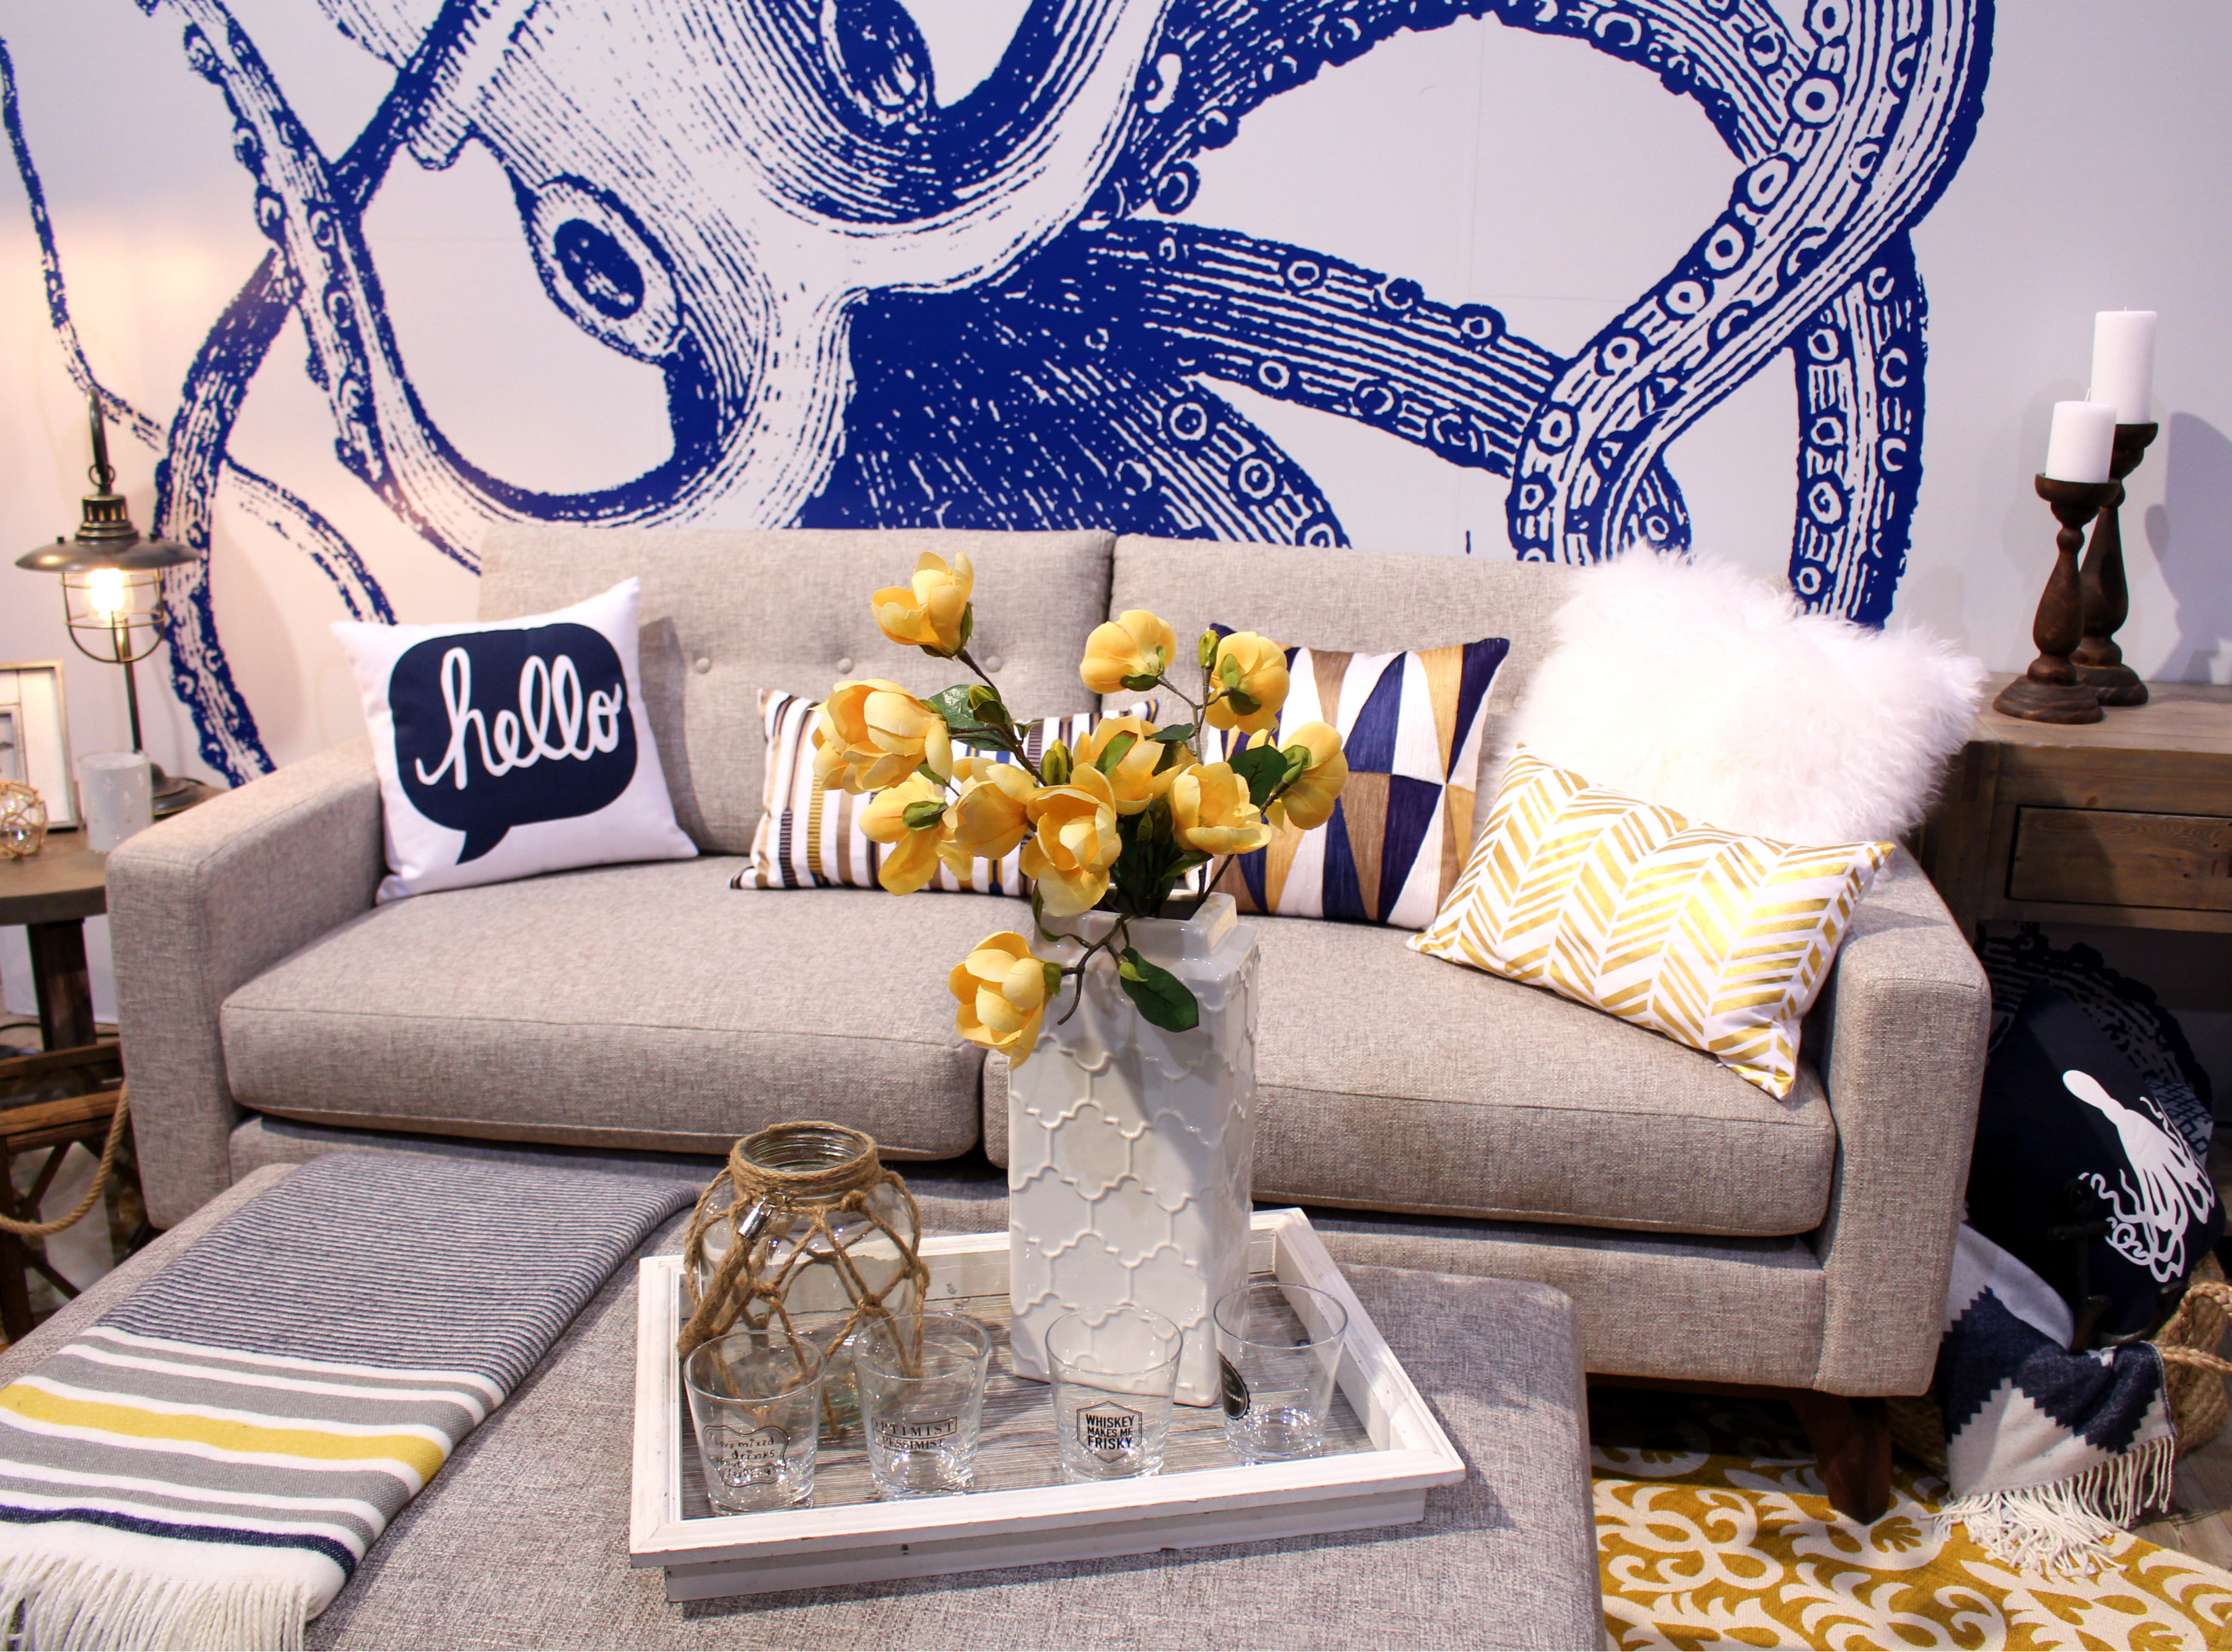 Rock The Boat With Urban Barn, Part Of Their Spring Collection